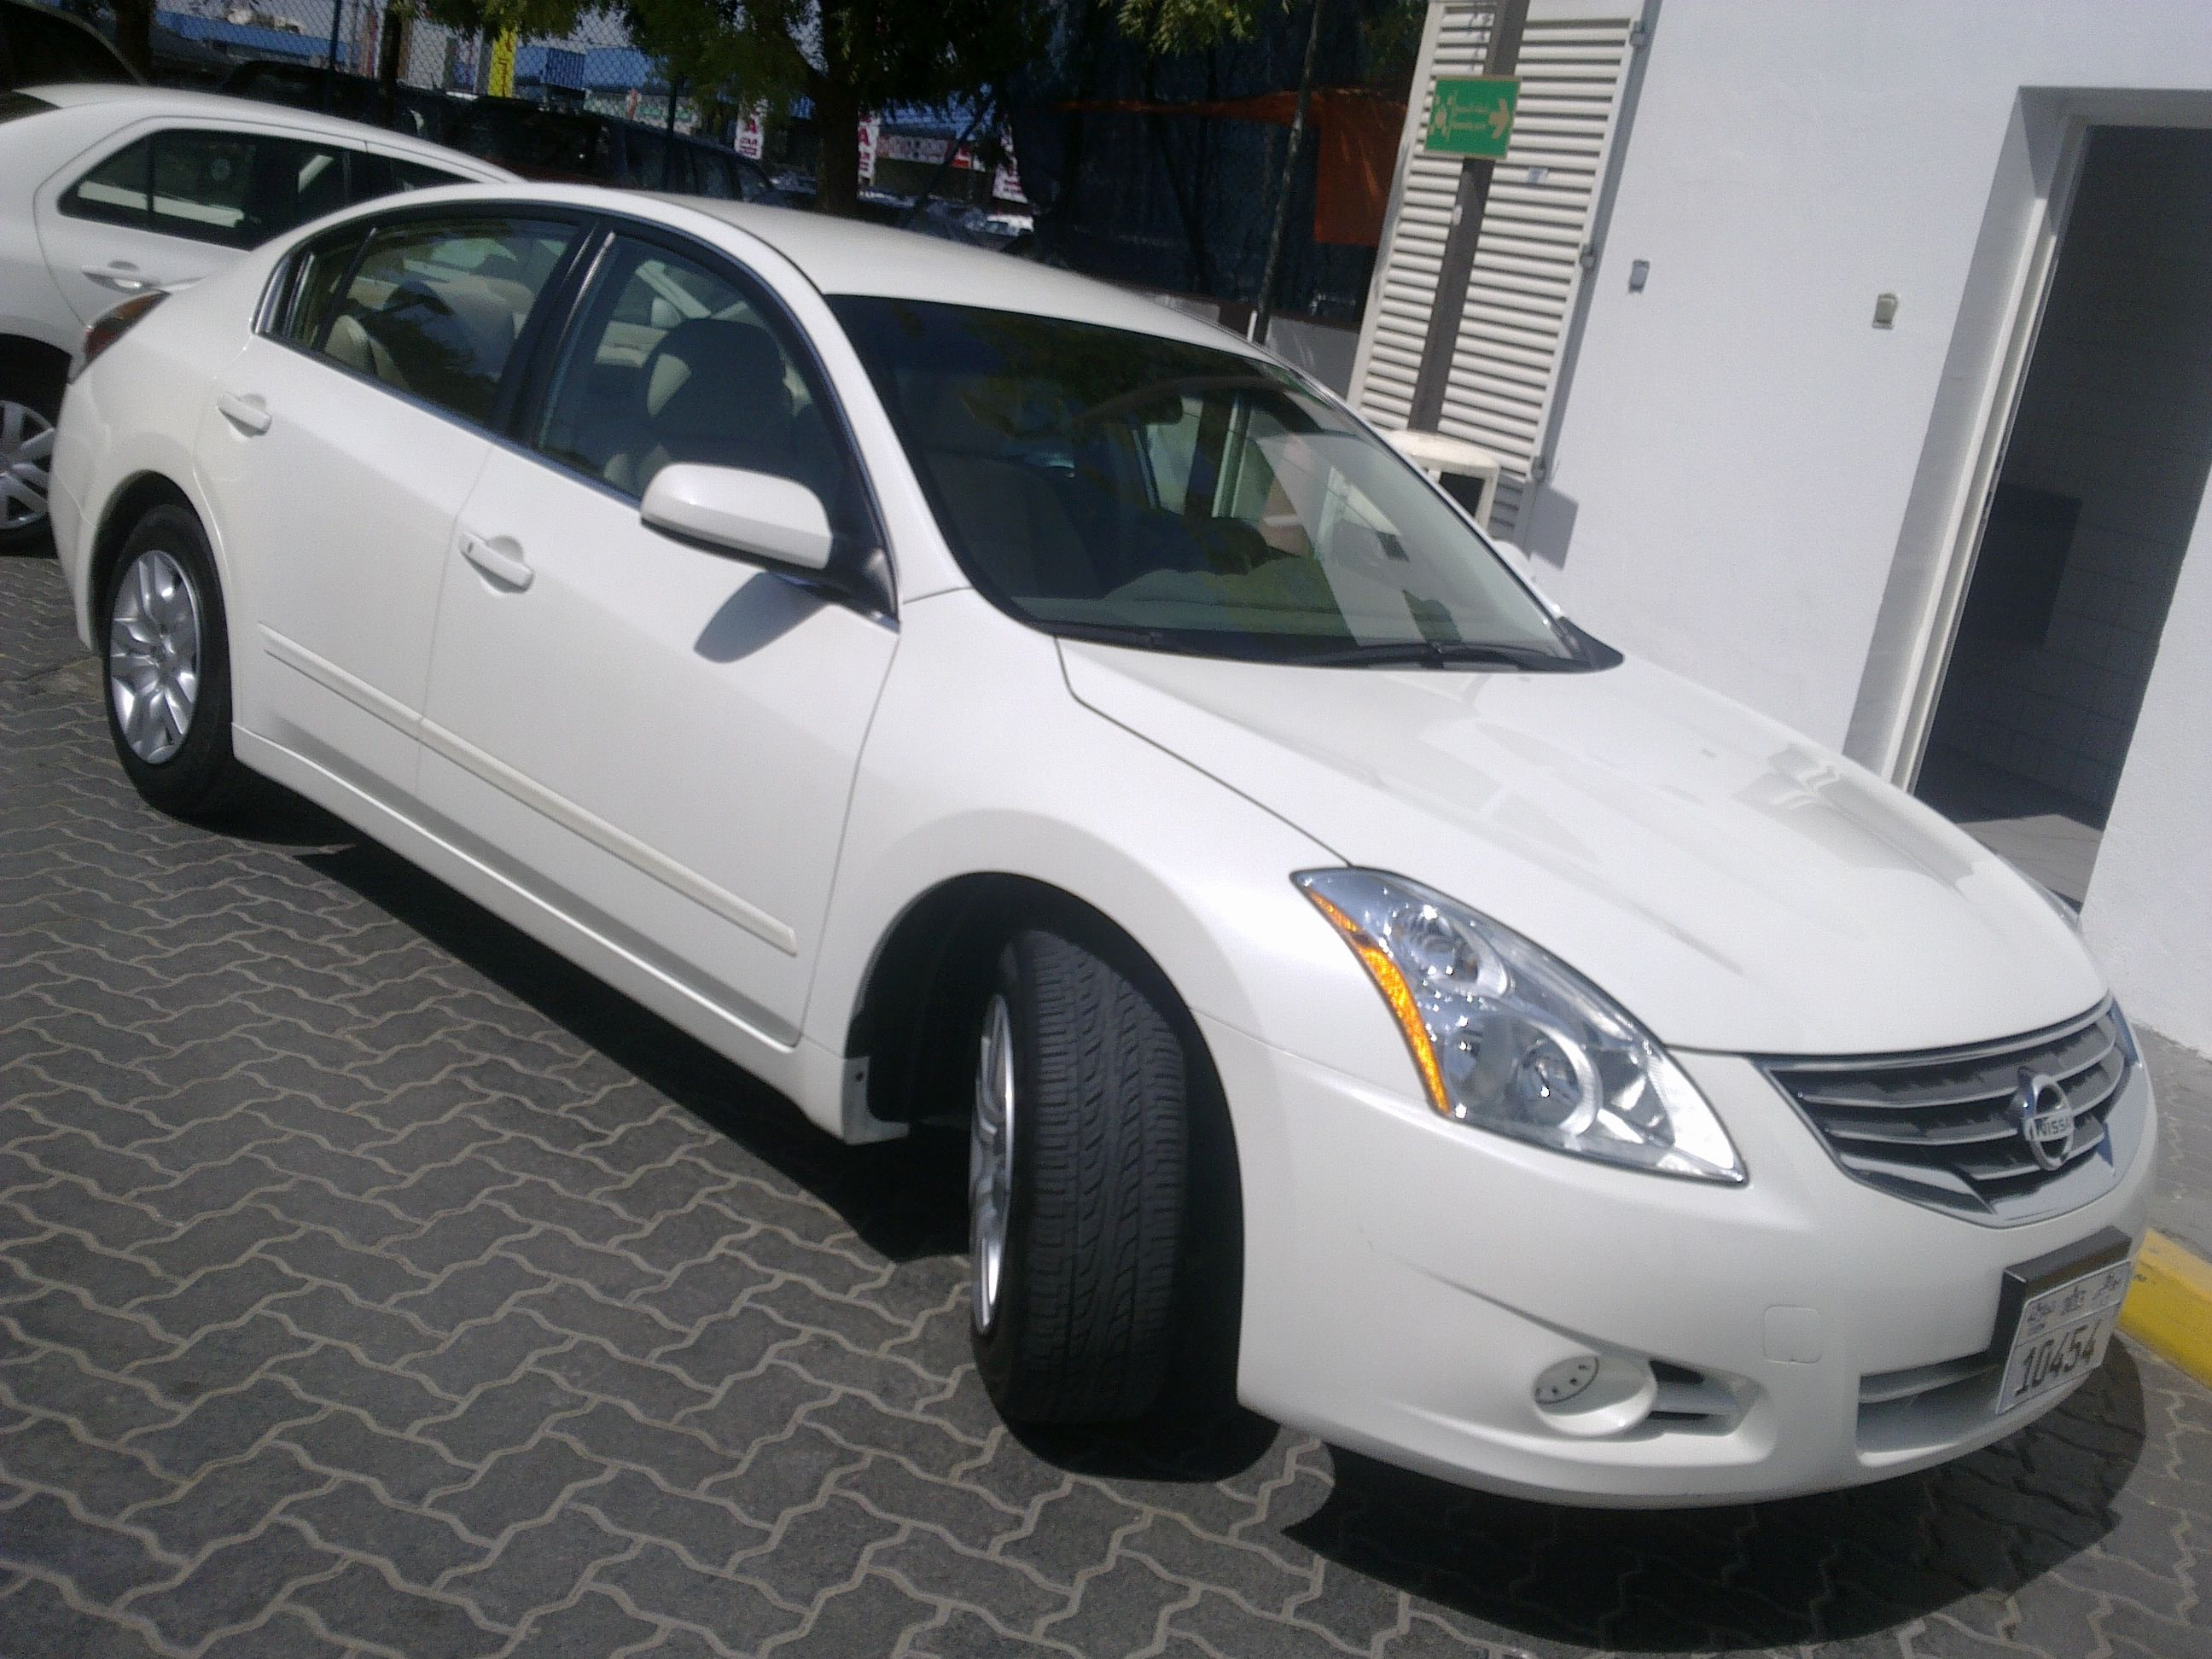 NISSAN ALTIMA AED 55000 Nissan altima, Altima, New and